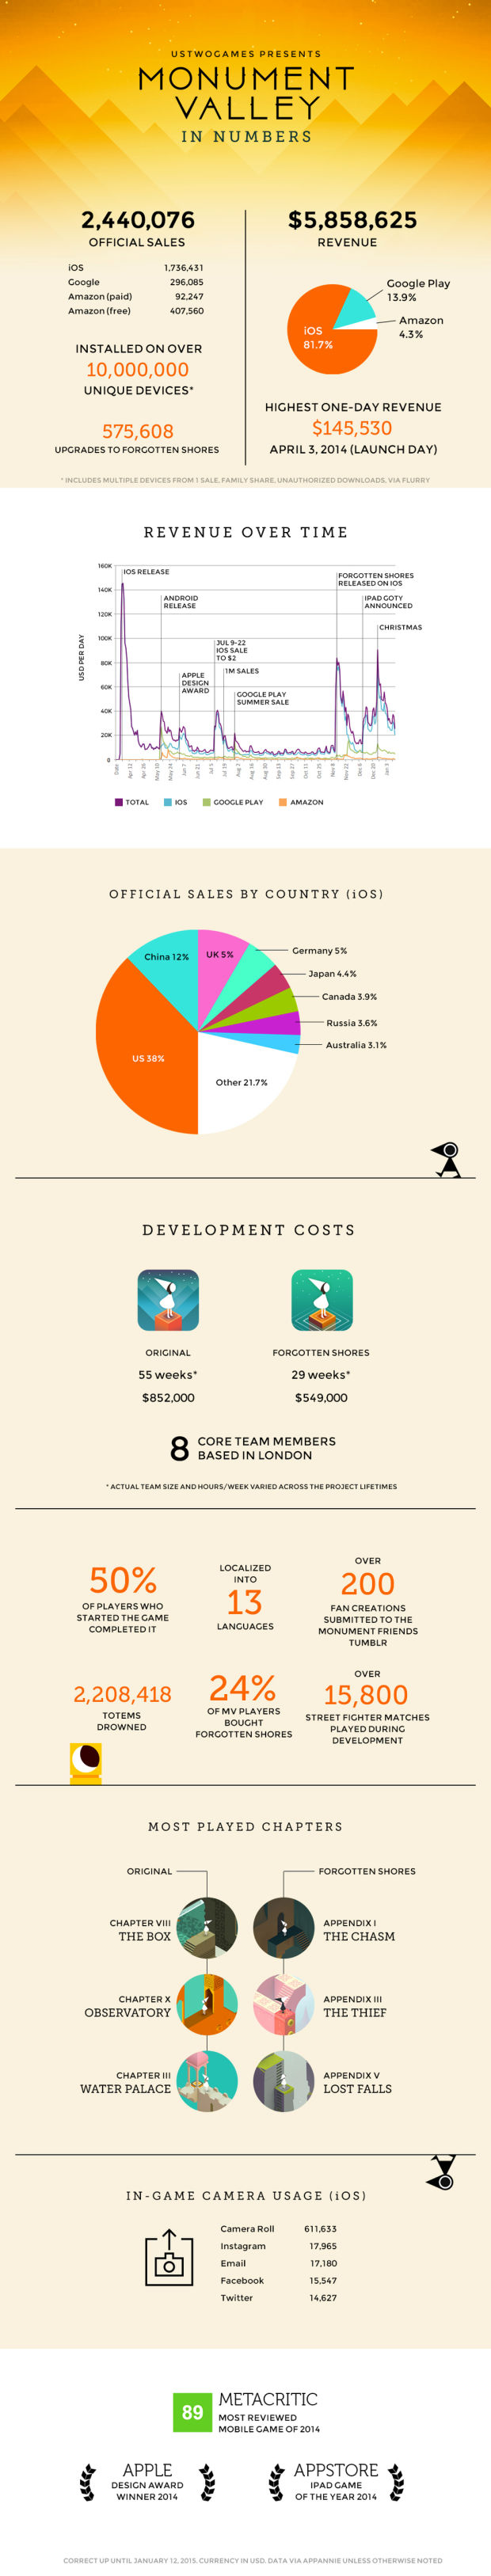 Monument Valley in Numbers, How Much Did It Make? - UltraLinx